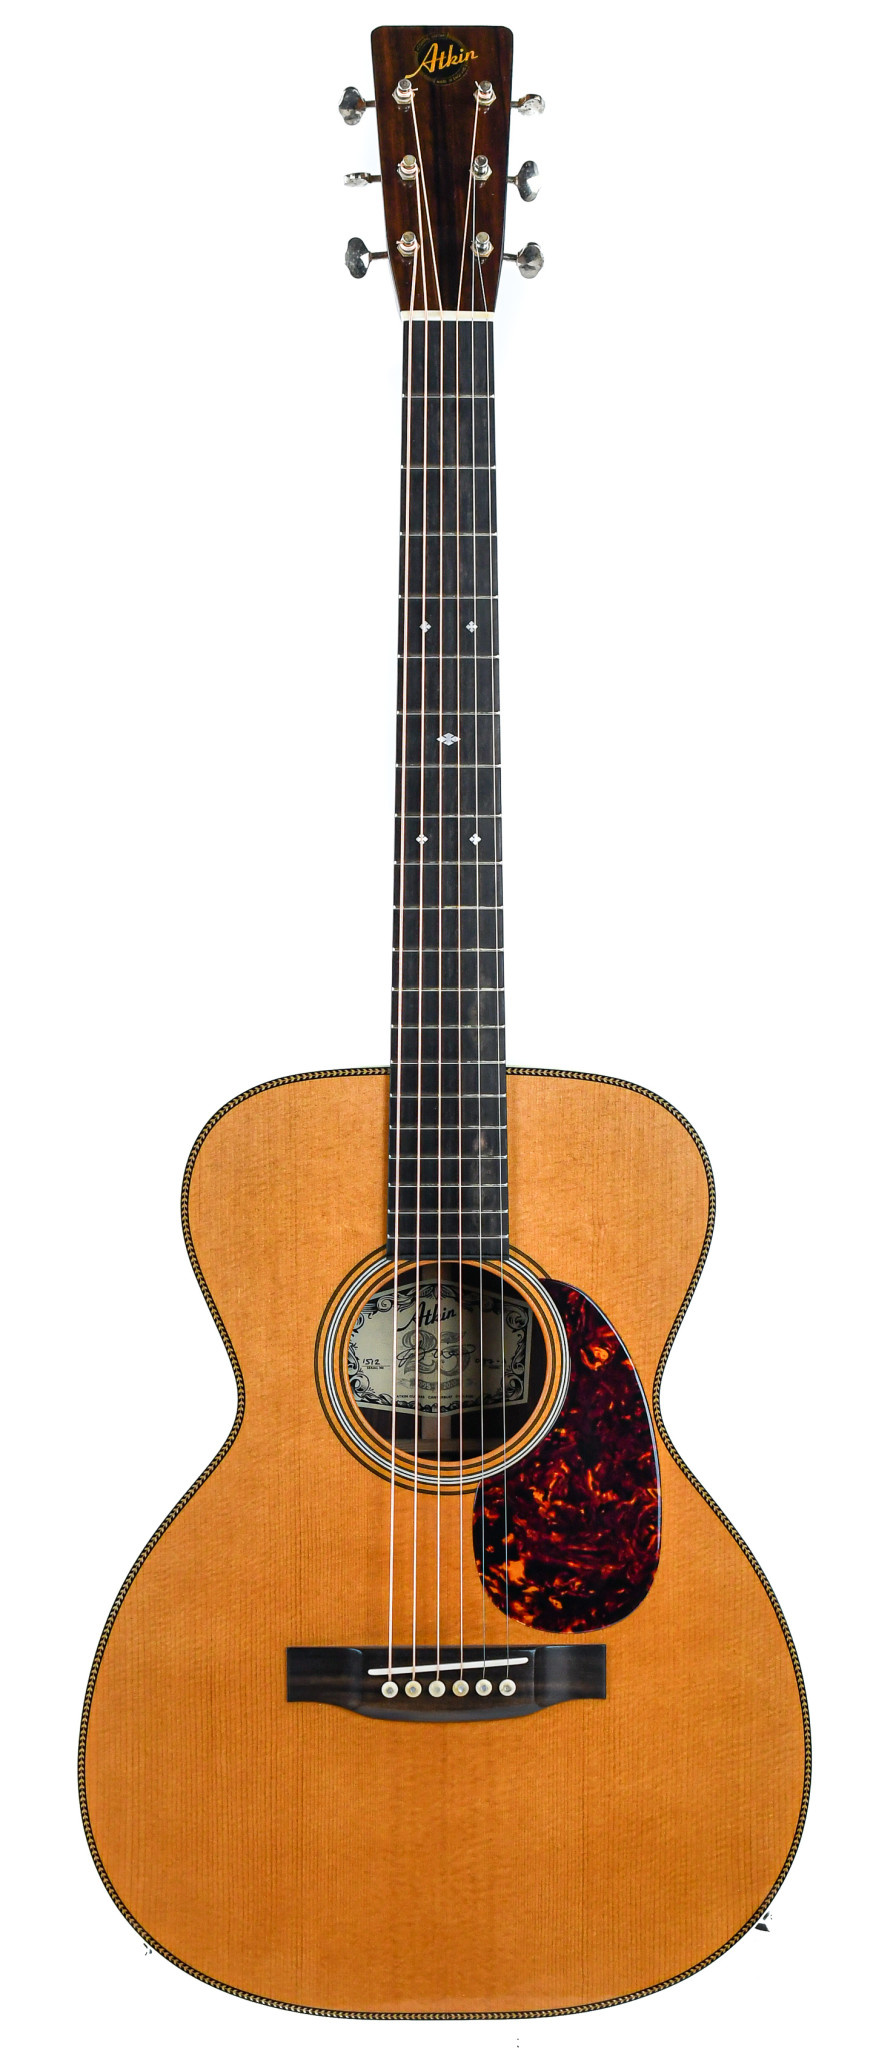 Atkin O37 Indian Rosewood Baked Sitka Spruce